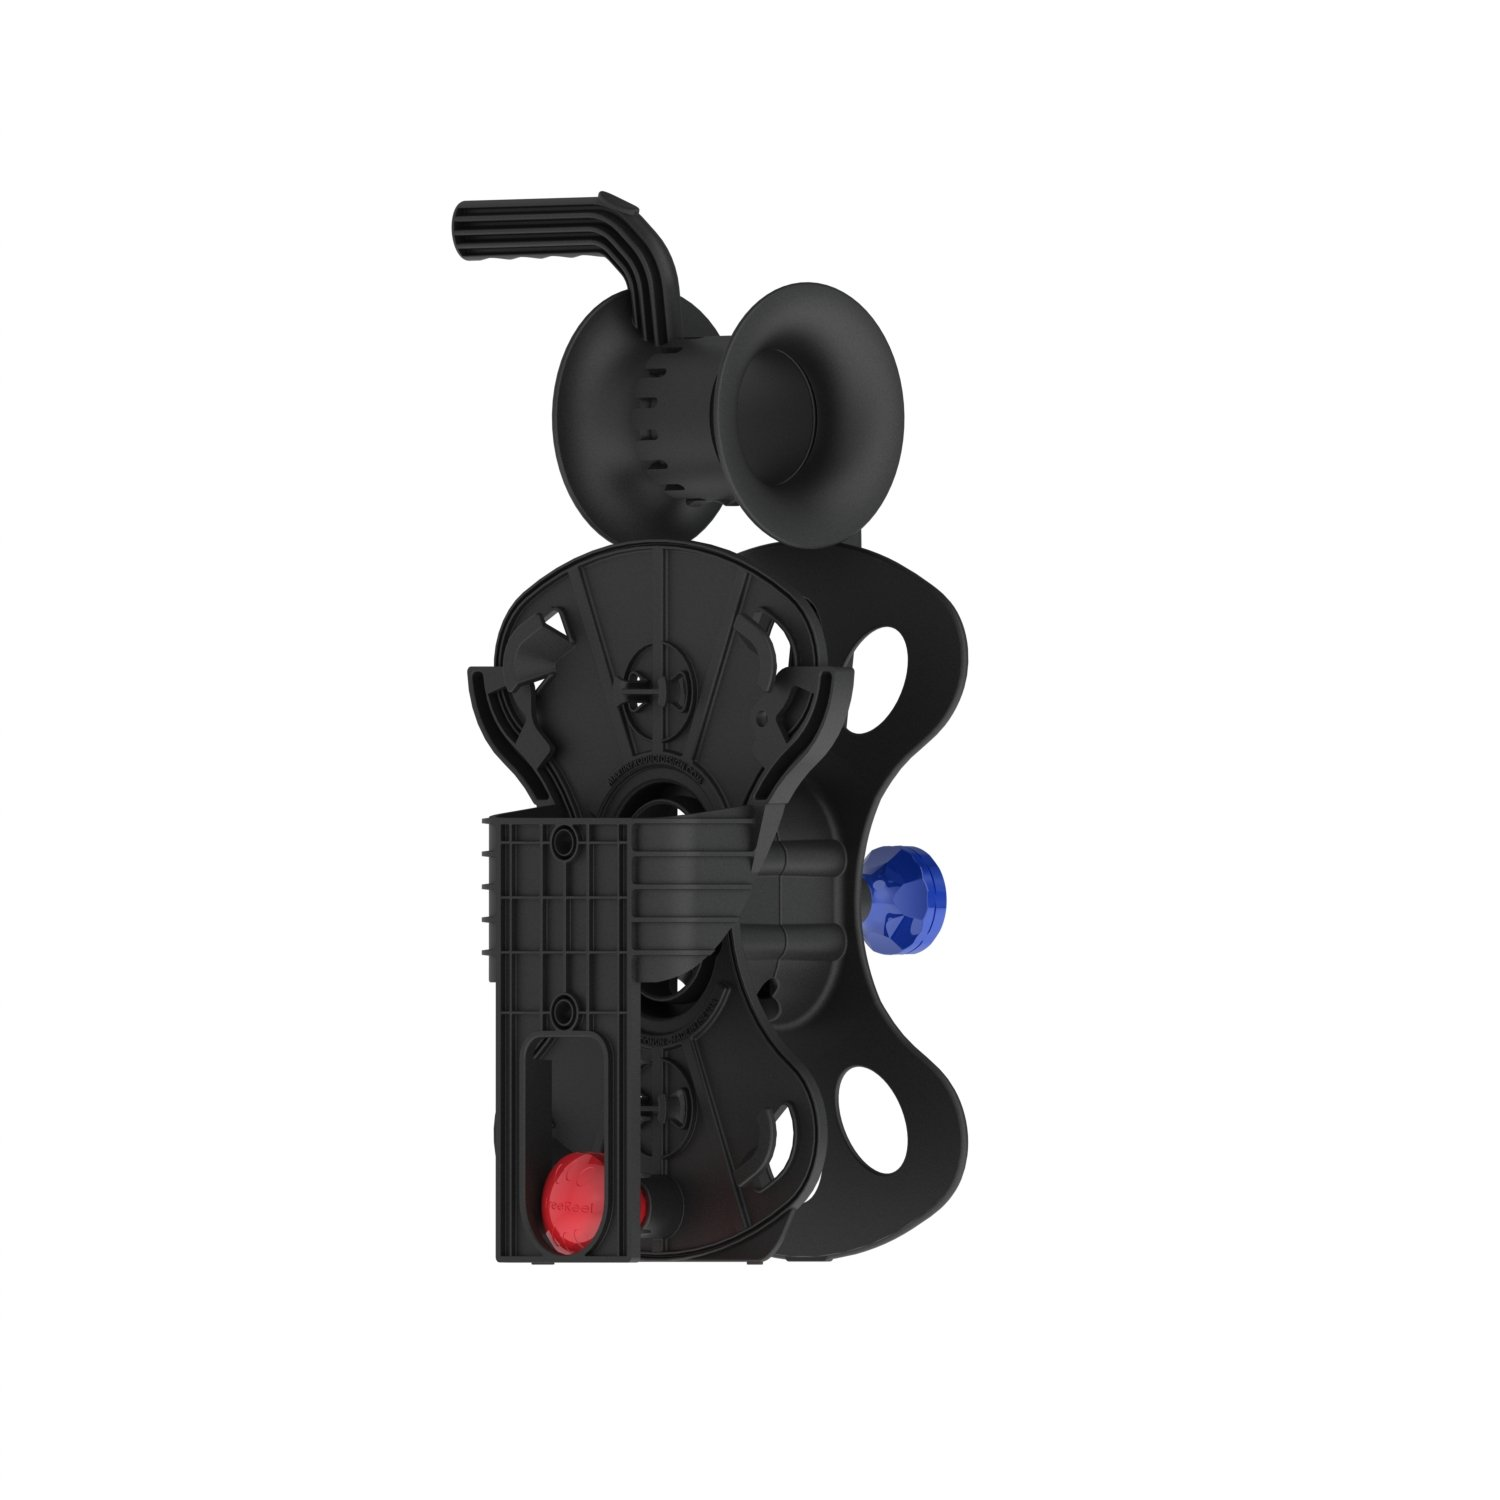 FreeReel - Heavy Duty Extension Cord Reel 100 ft 12/3, Air Hose Reel - Cord, Hose and Cable Storage Organizer - Includes 2 Storage Cassette Reel, 2 Precision Guide/Winder, 2 Wall Storage Mount by FreeReel (Image #6)